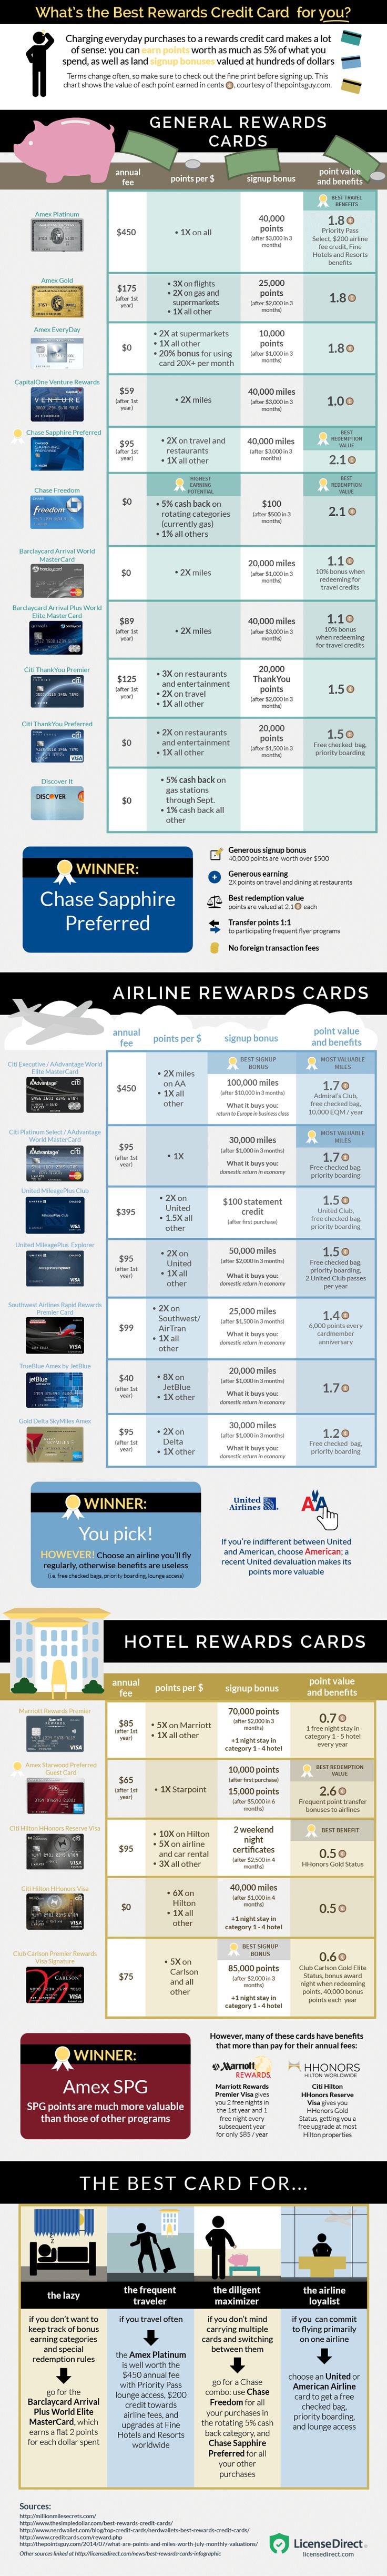 This Graphic Compares 25 of the Most Popular Rewards Credit Cards #CreditCardTips